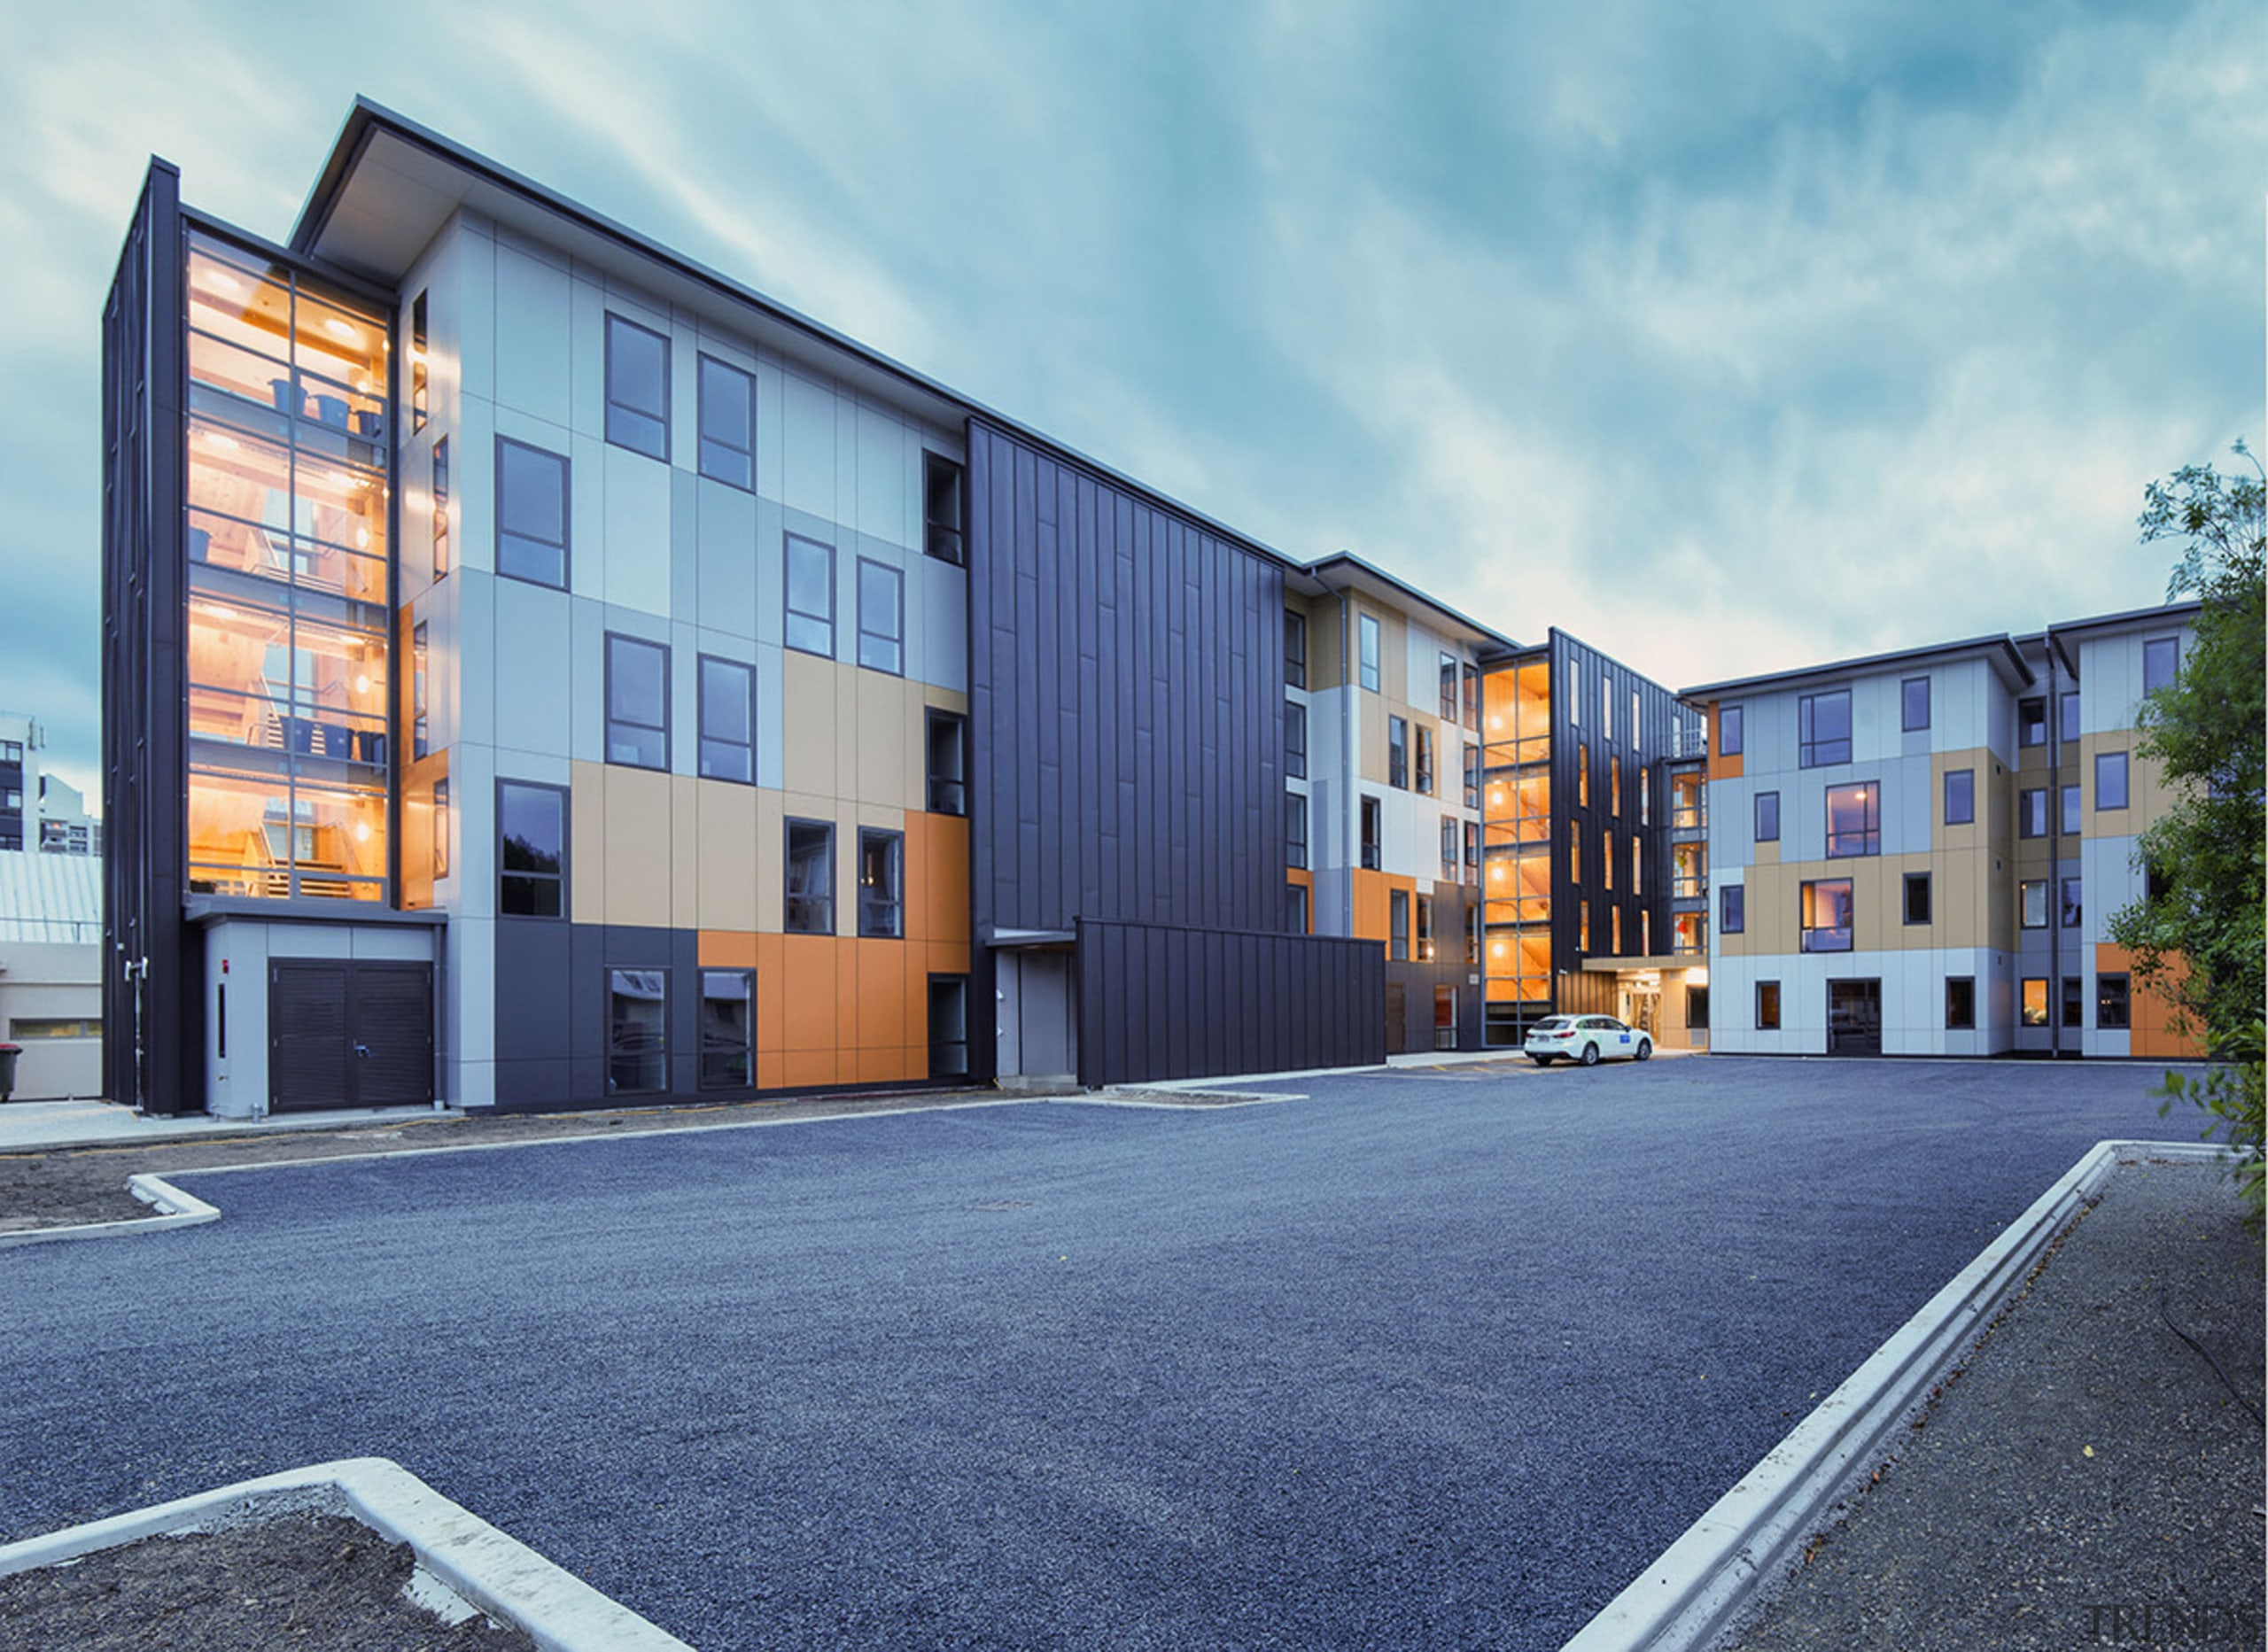 The Otago Polytechnic Student Village's faceted exterior creates apartment, architecture, building, commercial building, condominium, elevation, facade, home, house, mixed use, neighbourhood, property, real estate, residential area, sky, blue